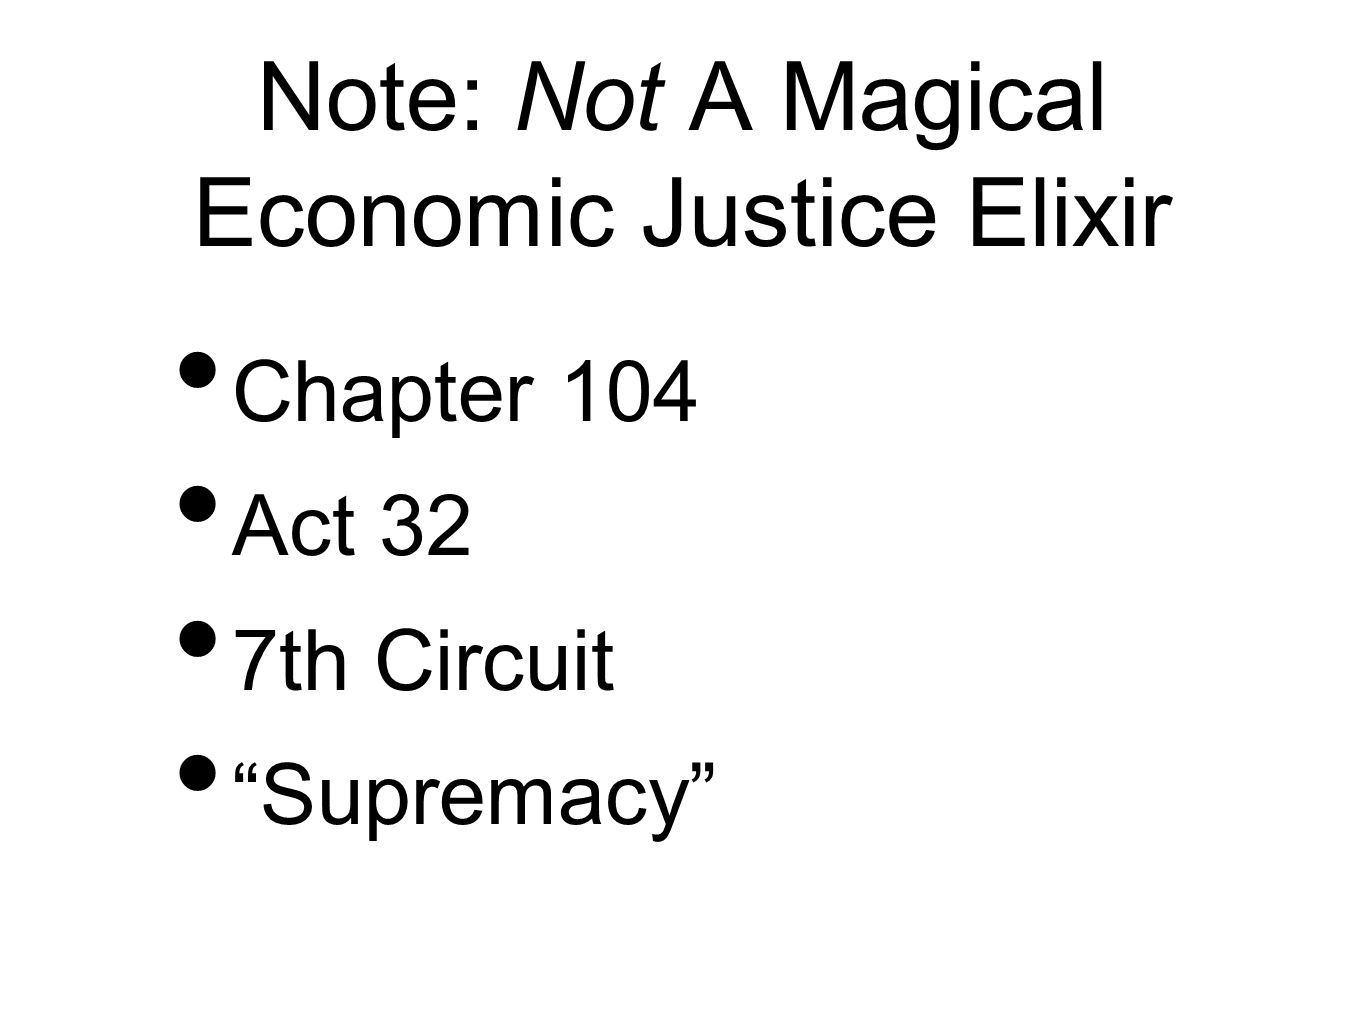 Note: Not A Magical Economic Justice Elixir Chapter 104 Act 32 7th Circuit Supremacy